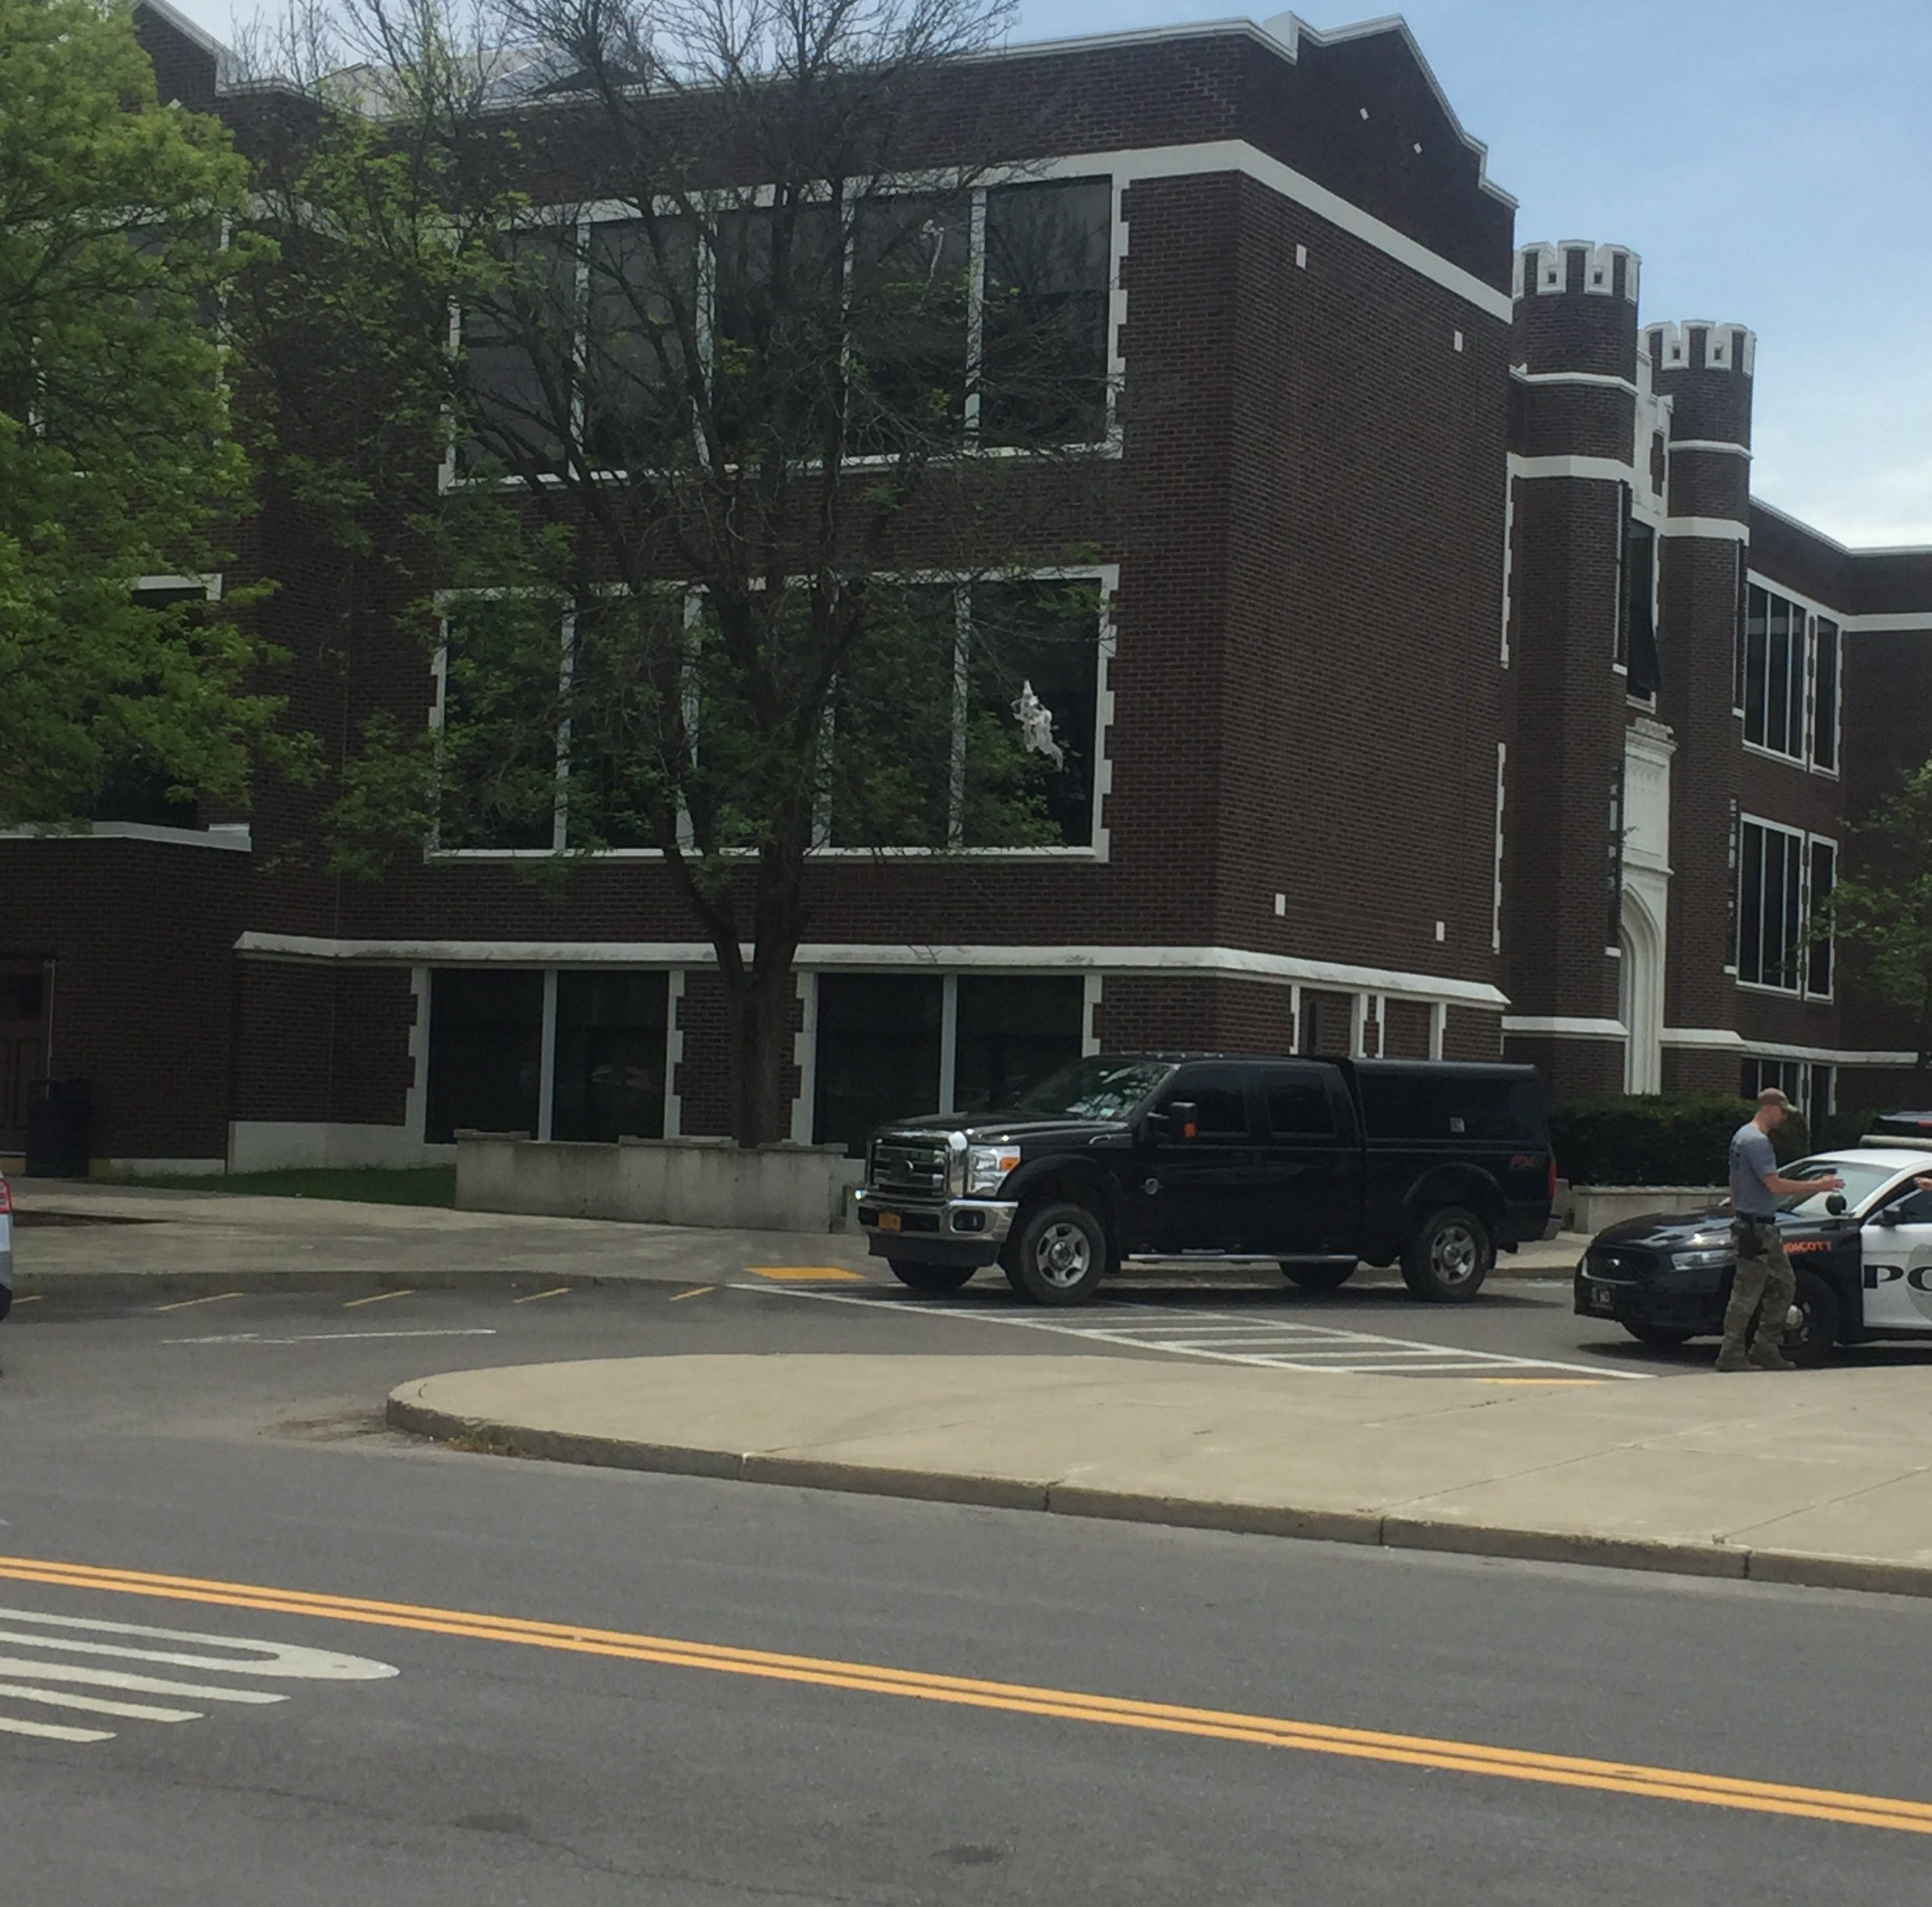 Union-Endicott lockdown lifted: One in custody after unauthorized entry to high school